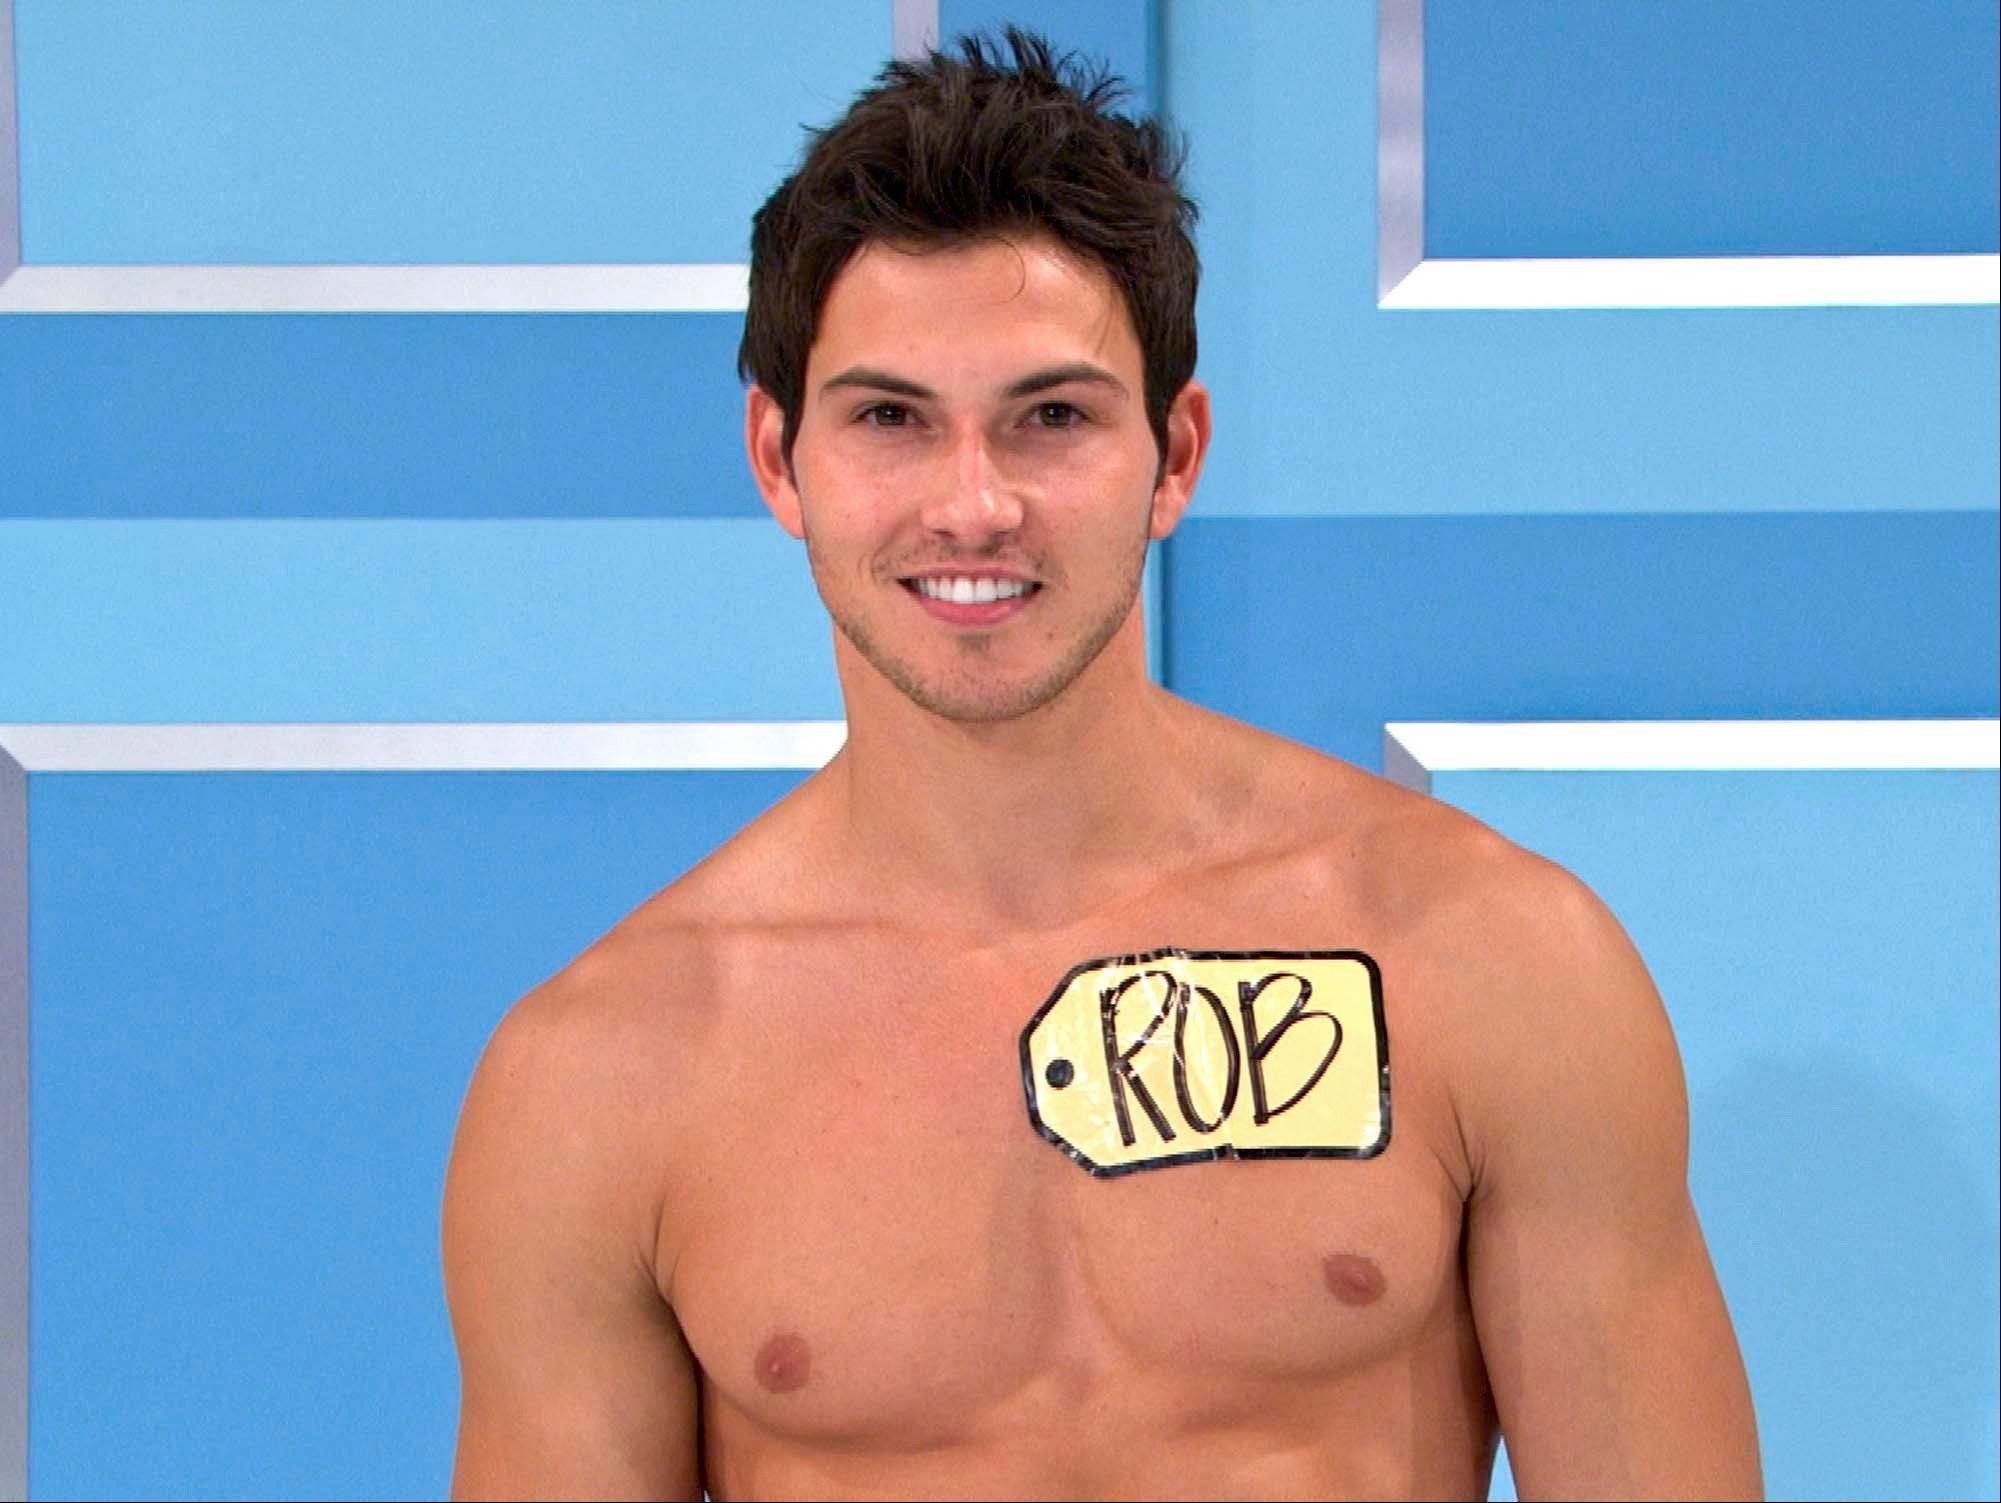 Rob Wilson, of Boston, was chosen in an online competition to be the first male model on the popular daytime game show �The Price is Right.� Wilson begins his weeklong stint on Oct. 15.